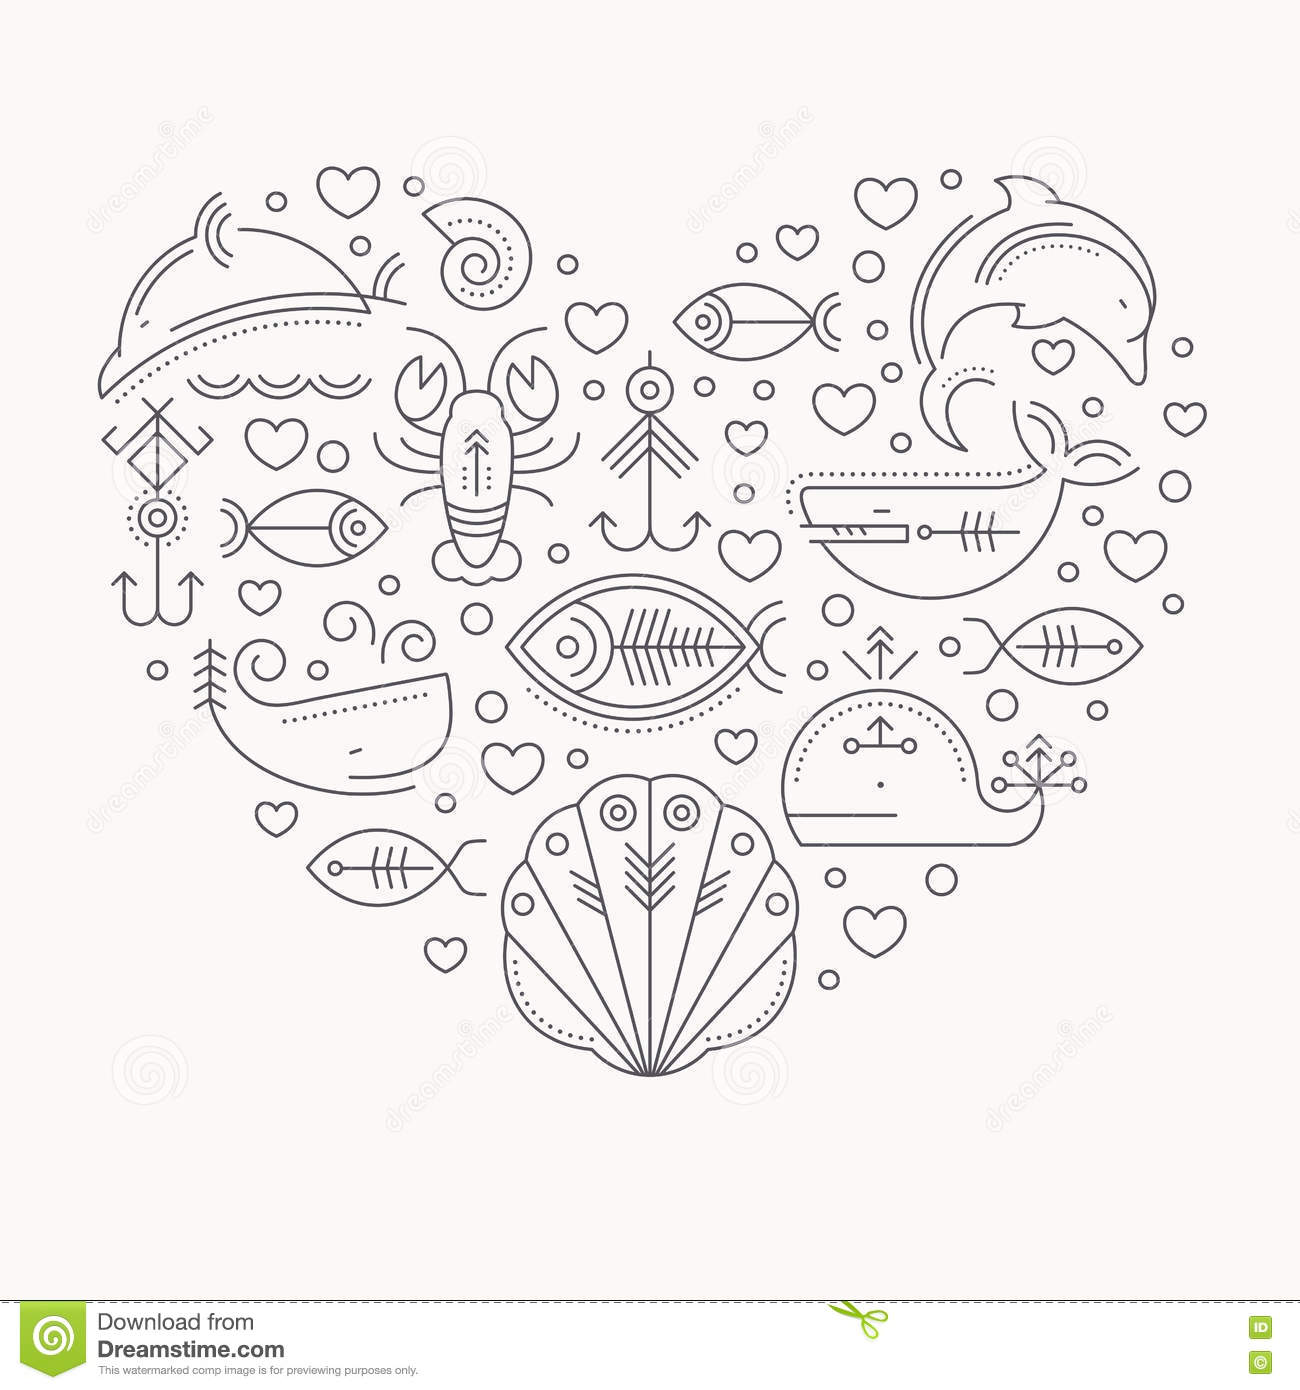 Vector illustration with outlined signs of marine animals forming a heart